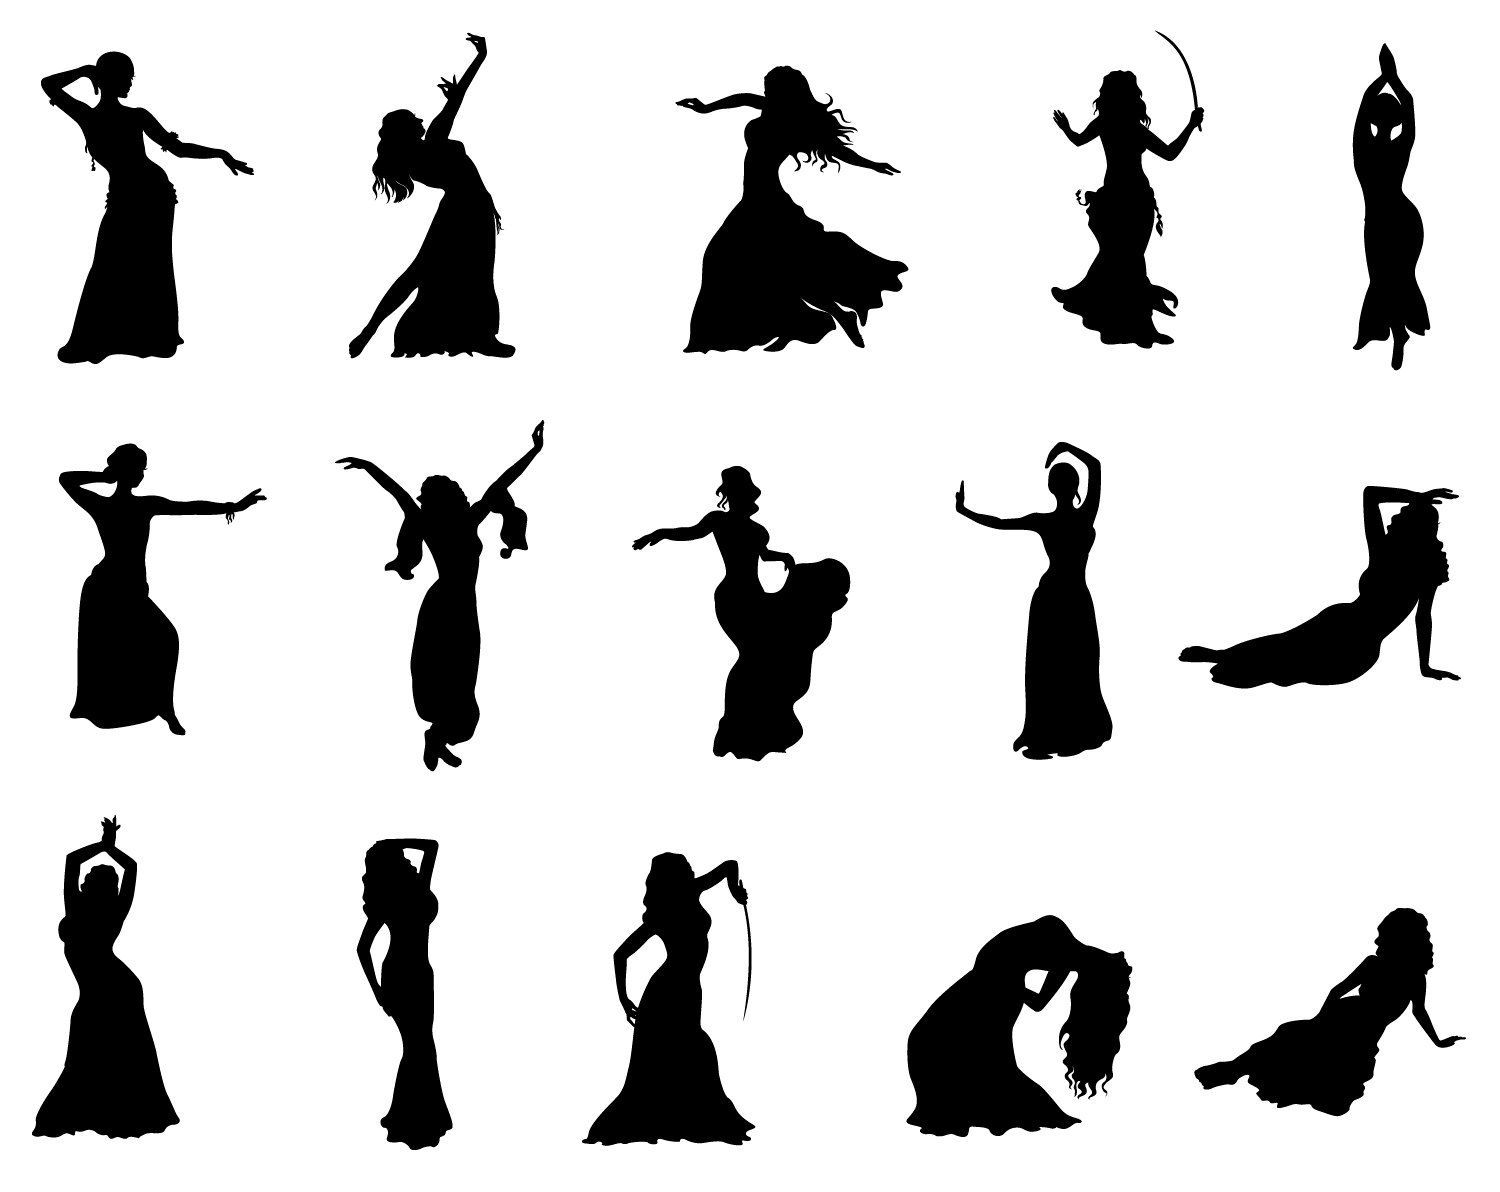 belly dancer silhouette clip art free belly dancer clipart image 0515 1007 2302 0714 art belly clip dancer silhouette